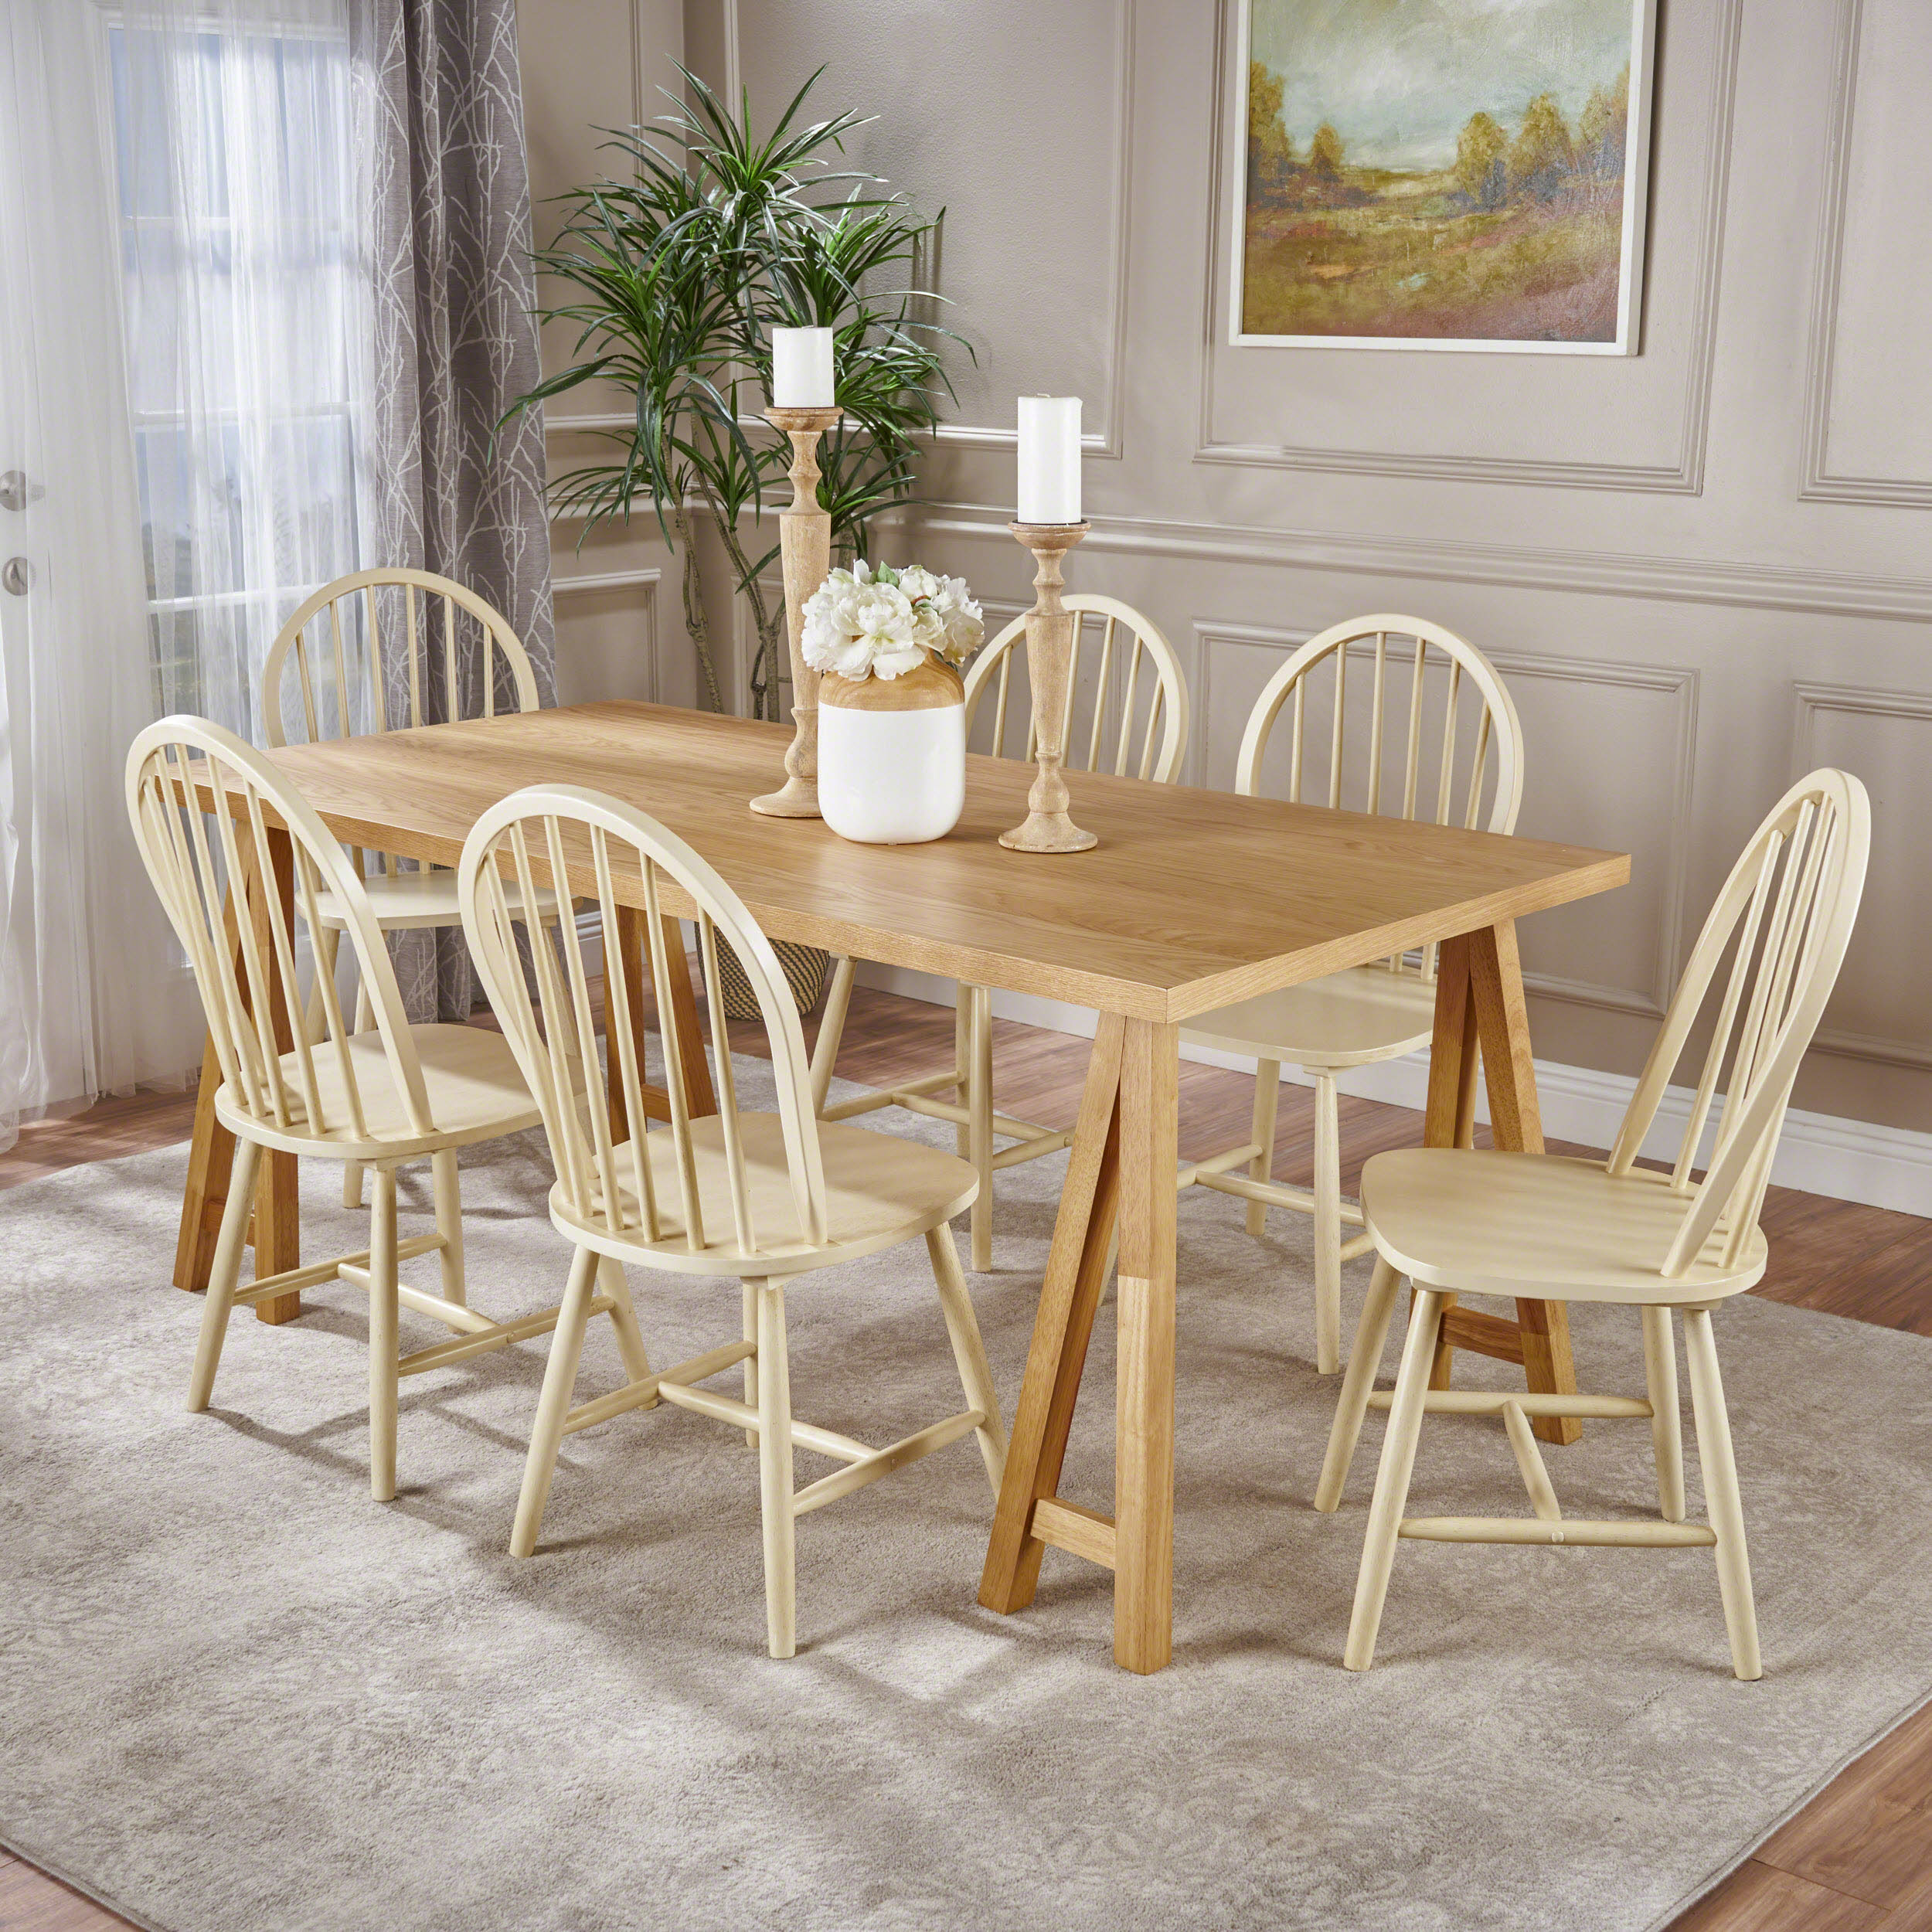 antique white dining chairs herman miller refurbished amy farmhouse cottage 7 piece faux wood set with rubberwood natural oak and